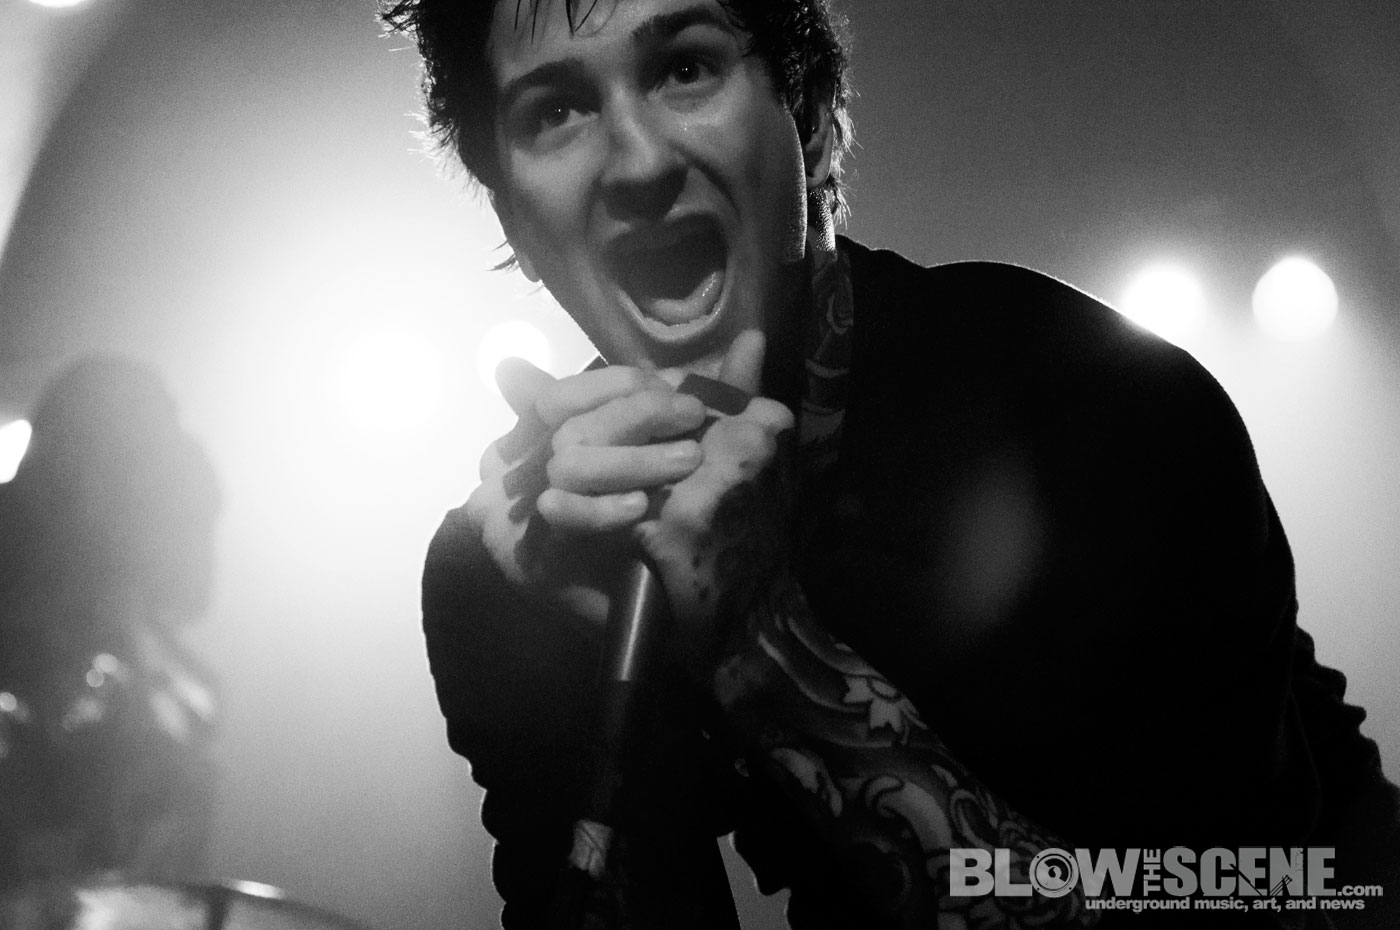 mitch lucker Mitchell adam mitch lucker (20 october 1984 – 1 november 2012) [1] was an american musician and lead singer for the deathcore band suicide silence lucker first started performing in his brother's garage band, covering a hatebreed song he knew the lyrics to when they needed a vocalist lucker.